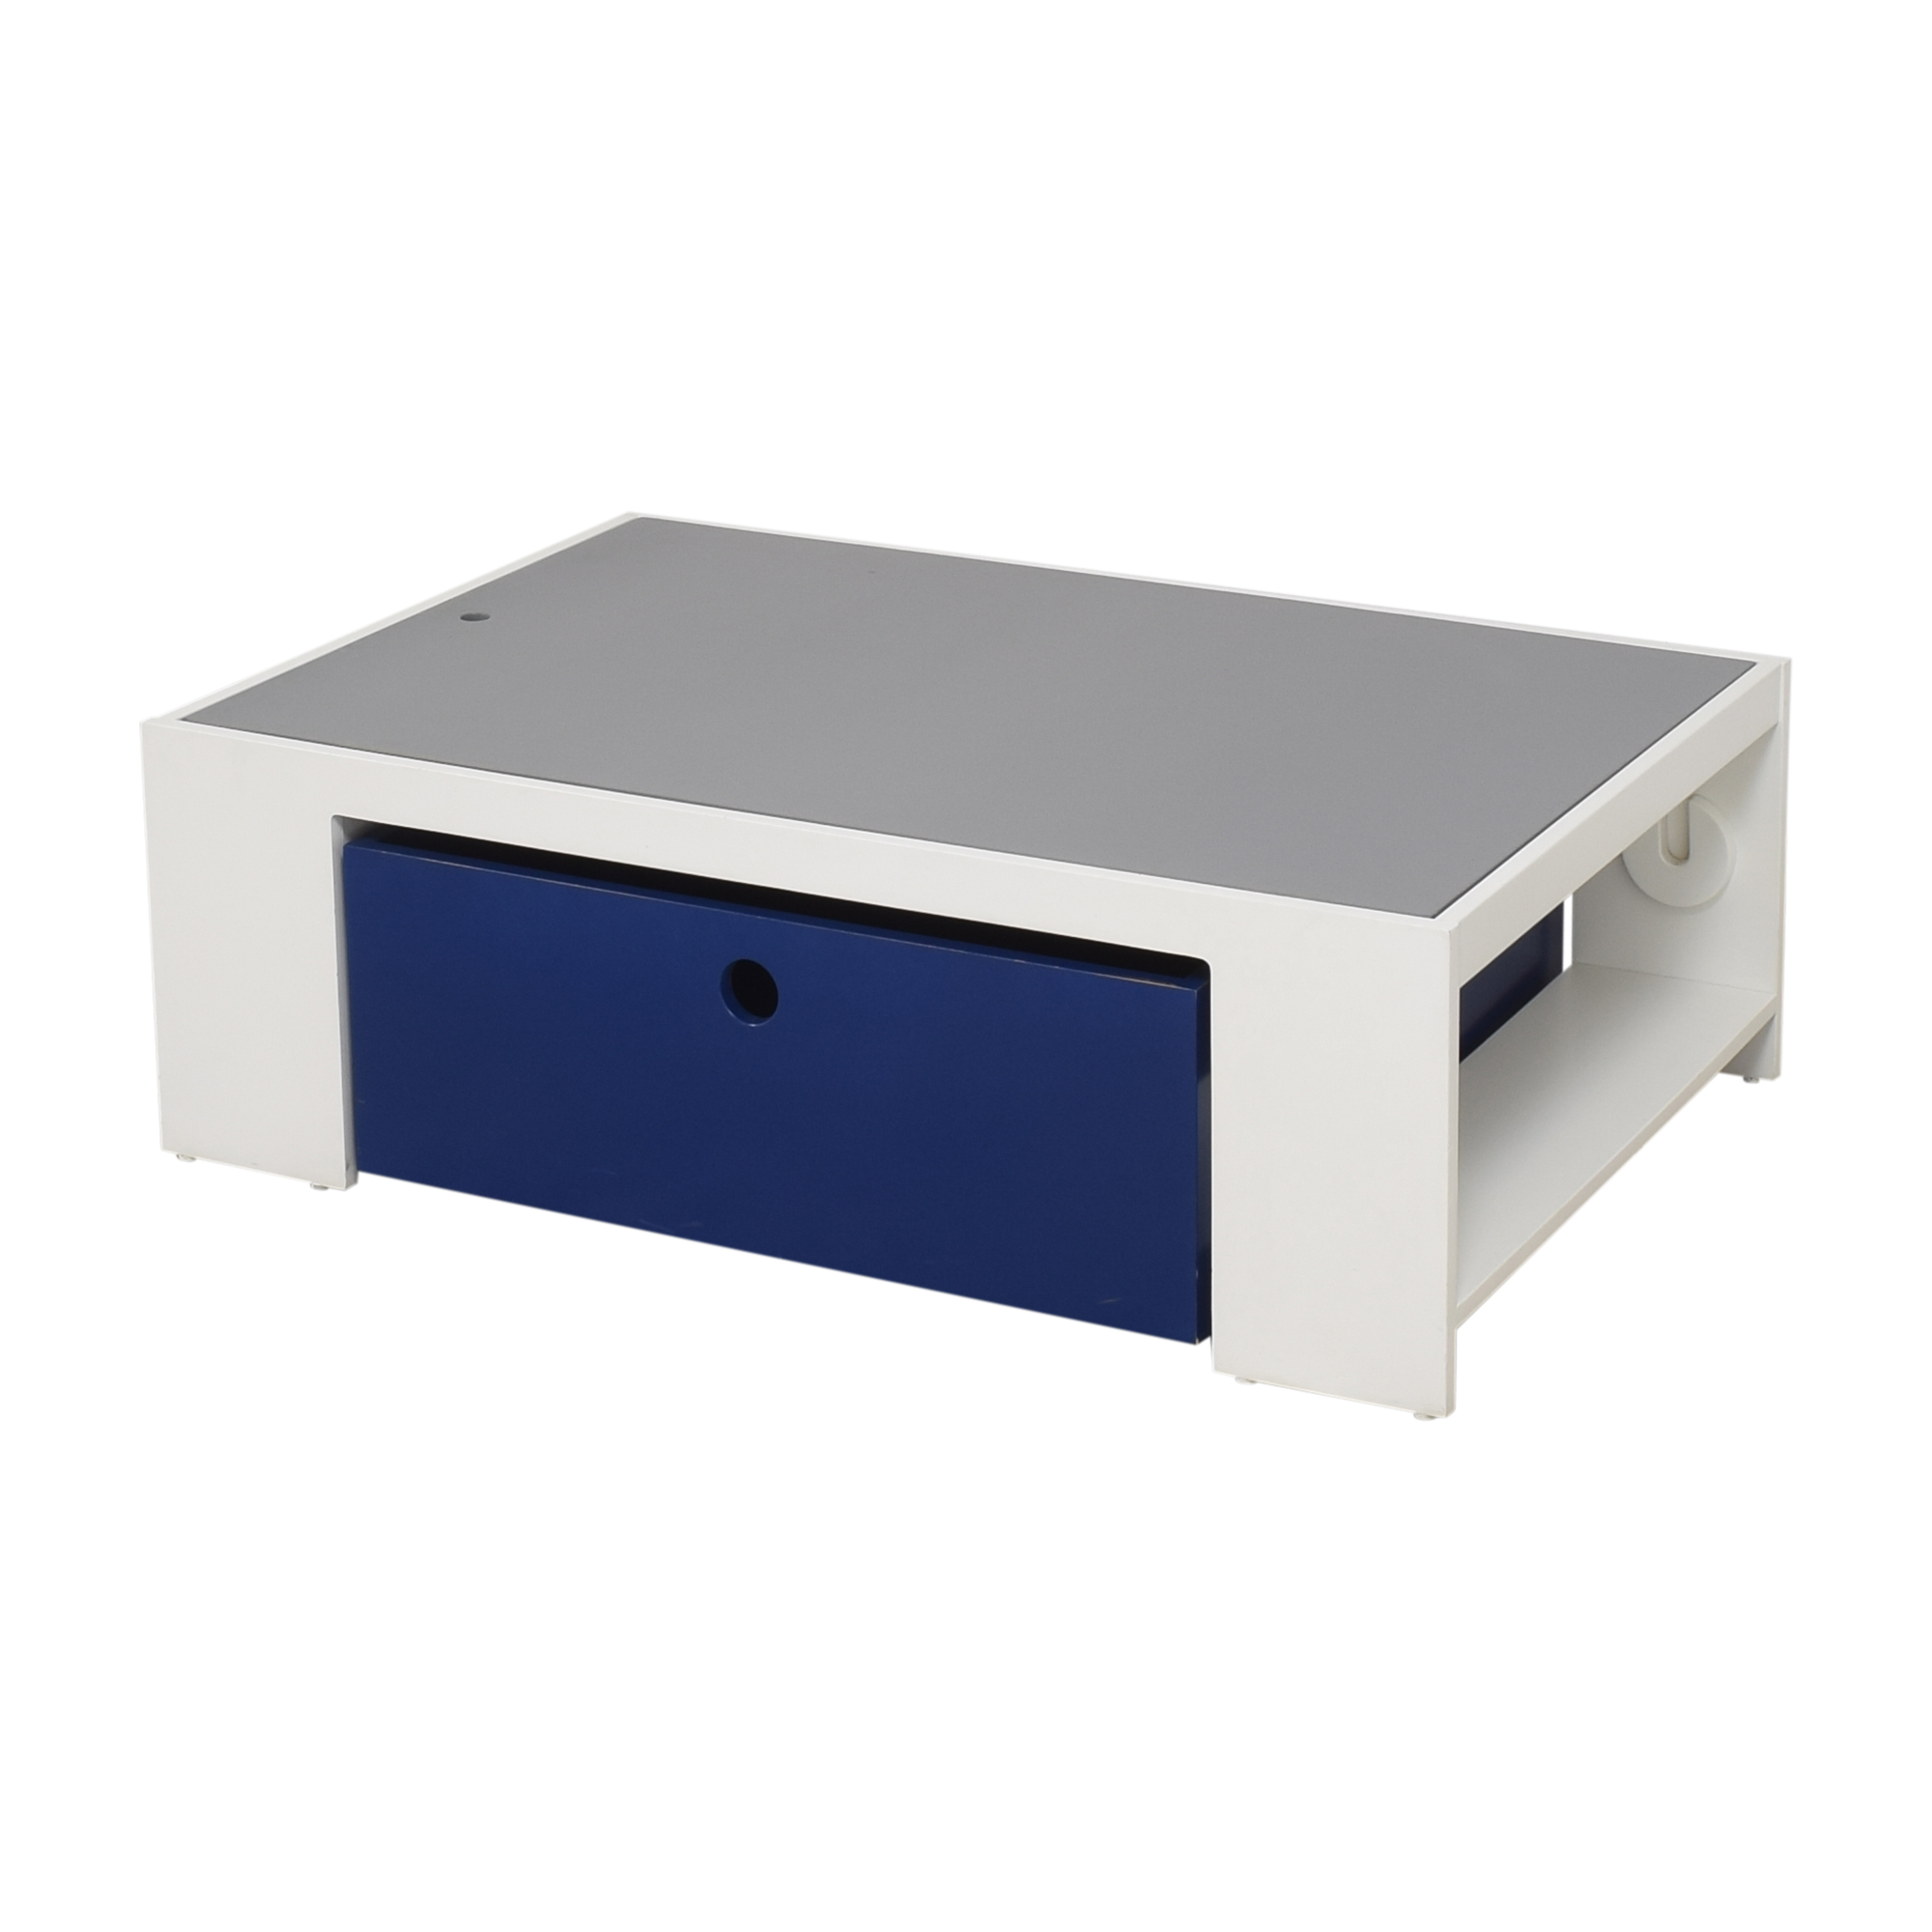 ducduc ducduc Parker Playtable  price